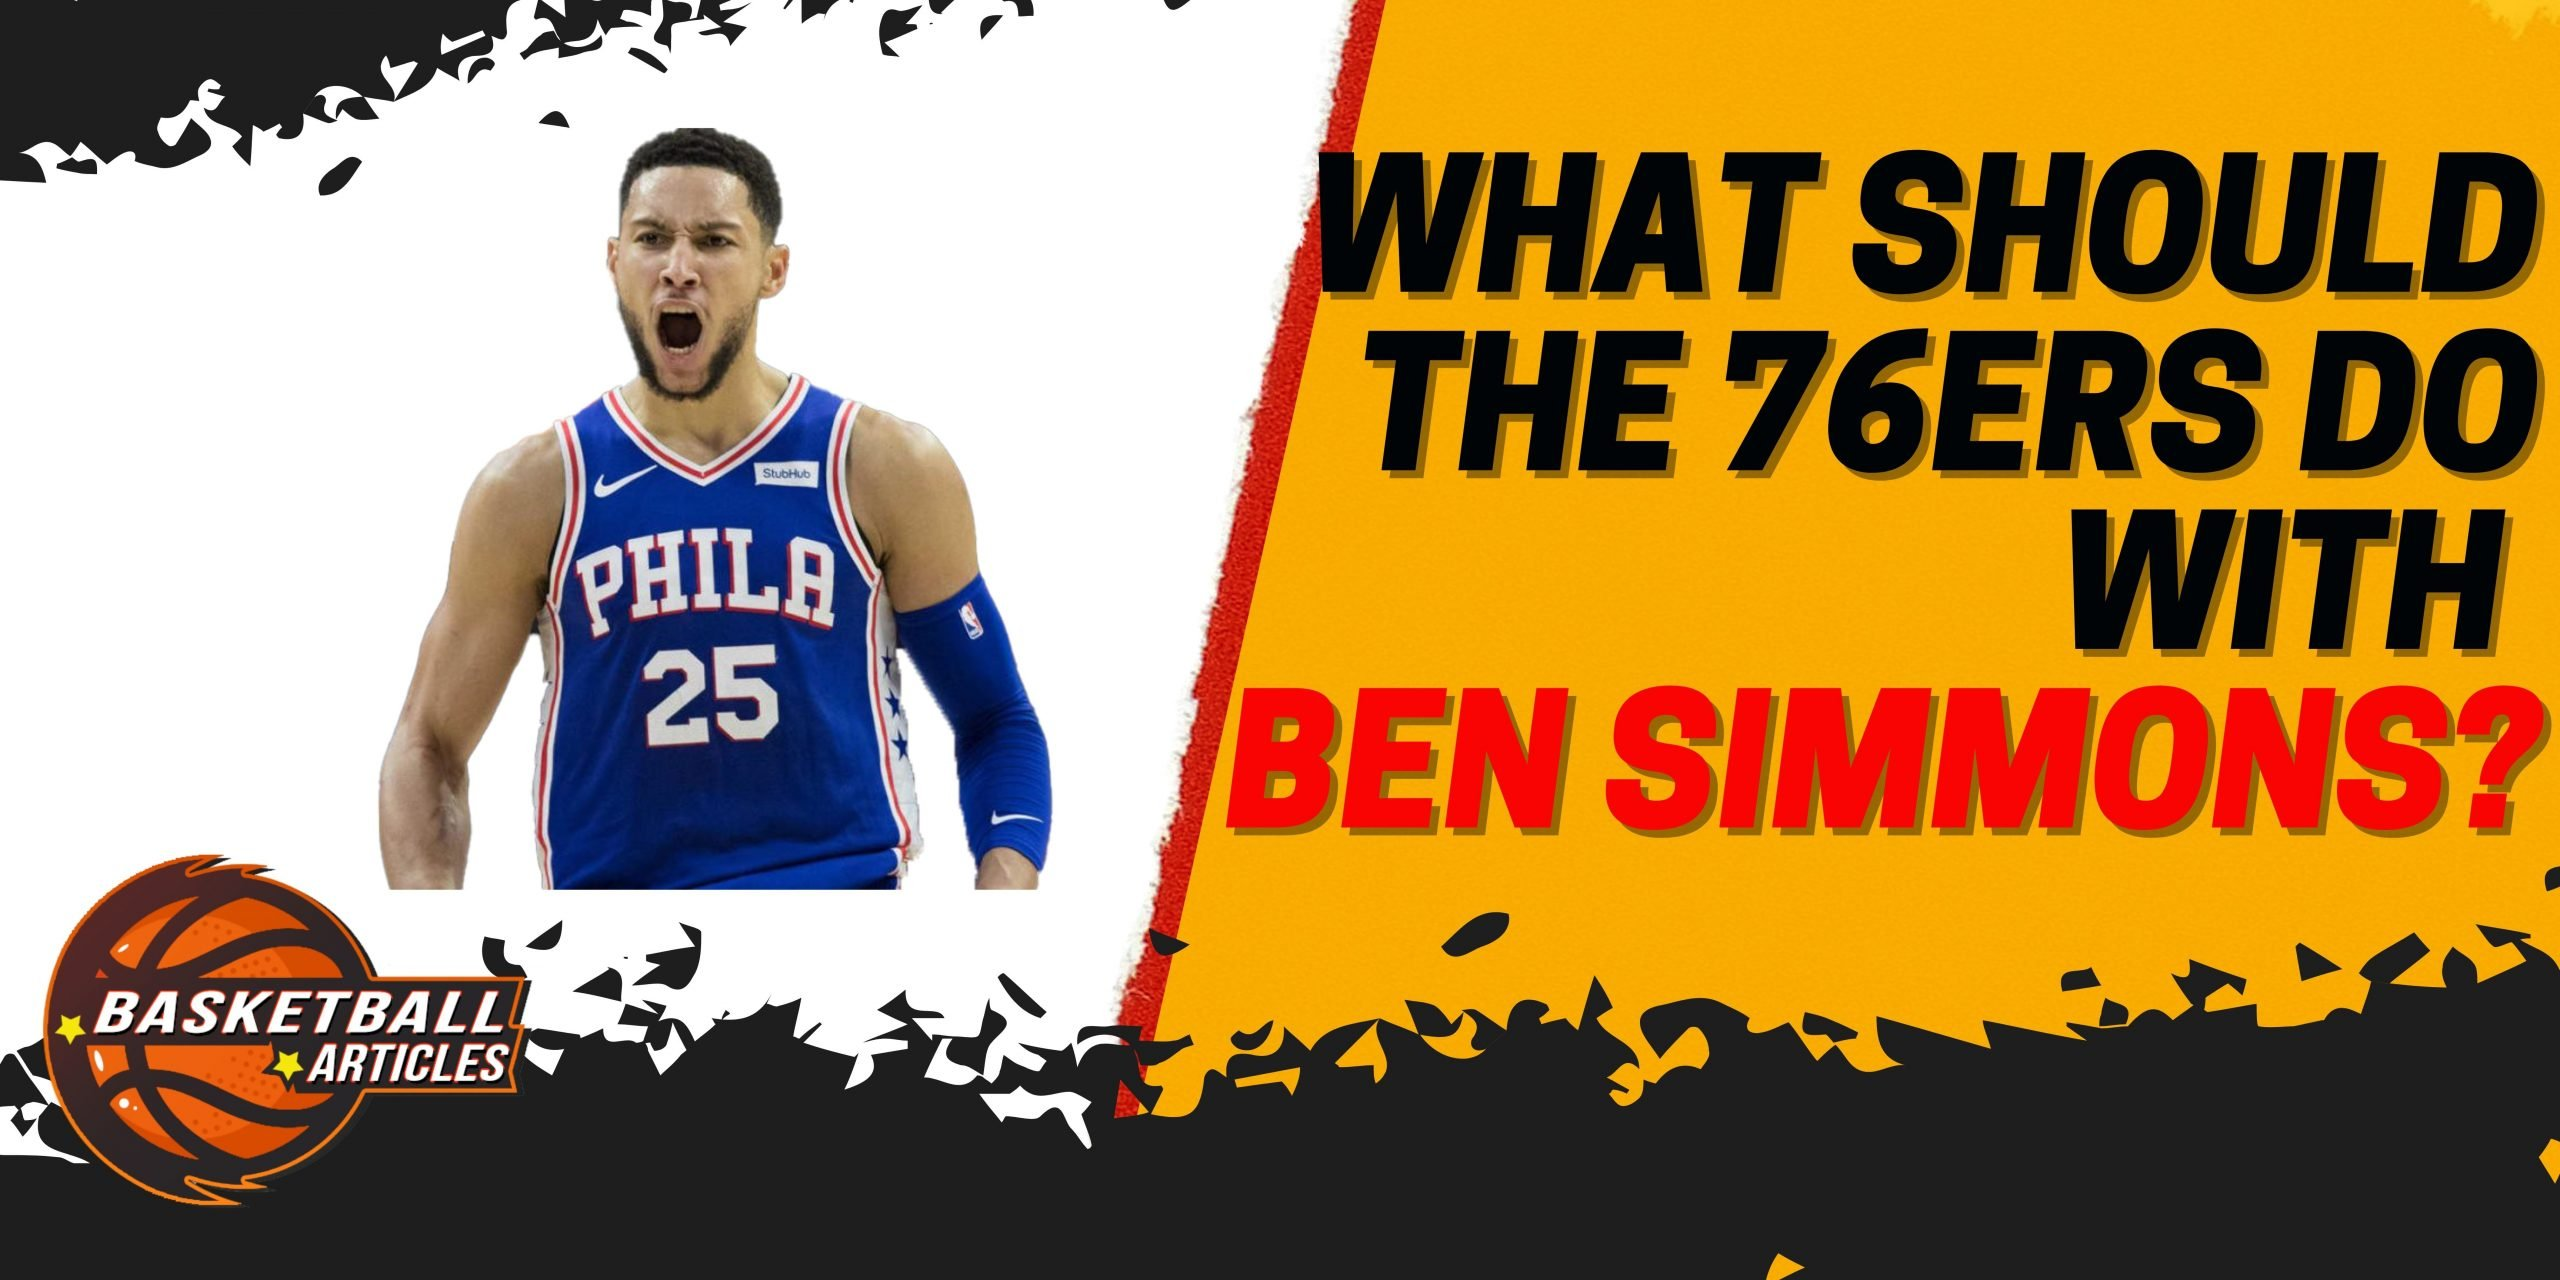 What Should the 76ers Do With Ben Simmons?